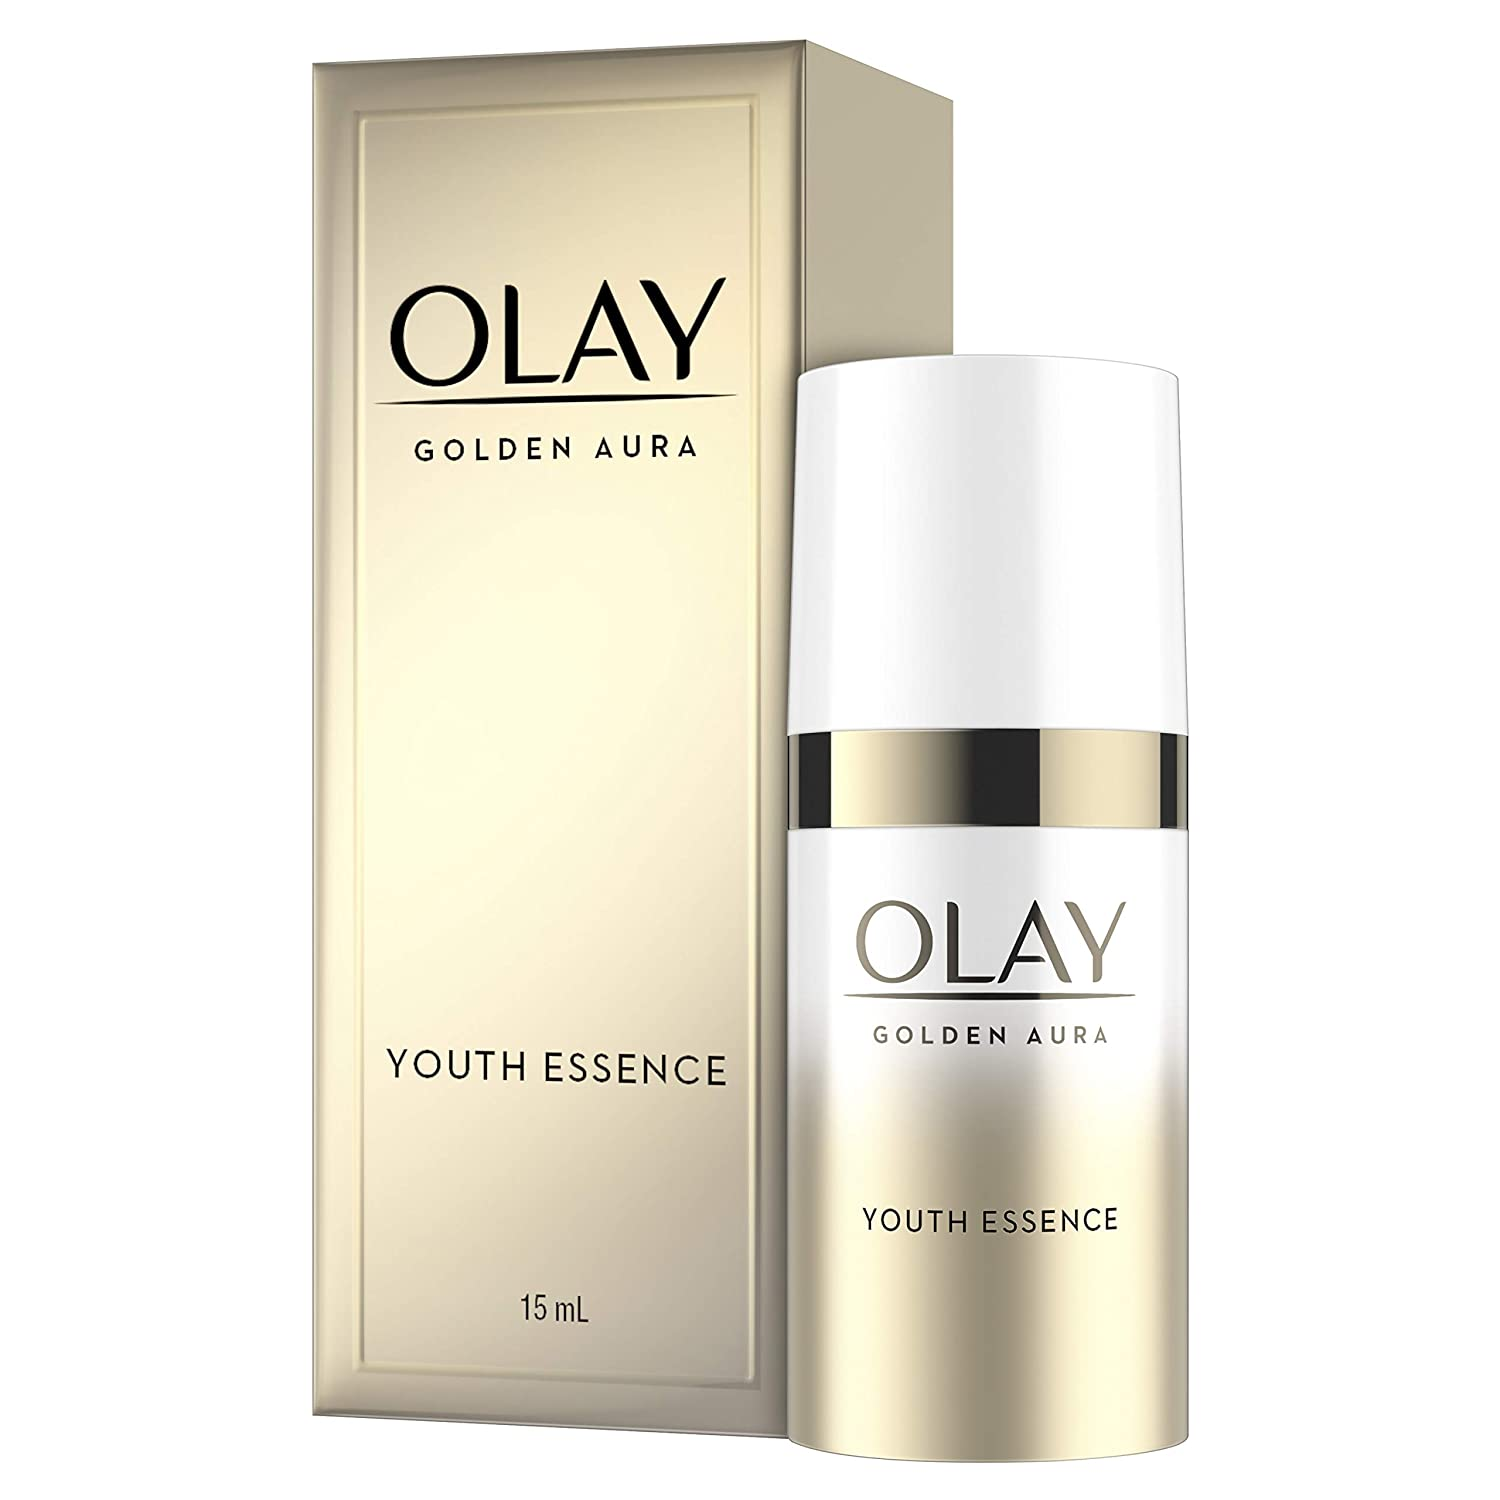 Facial Essence by Olay, Golden Aura Youth Face Serum, Korean Inspired Skincare with Vitamin B3, 0.5 Fl Oz, Trial Size